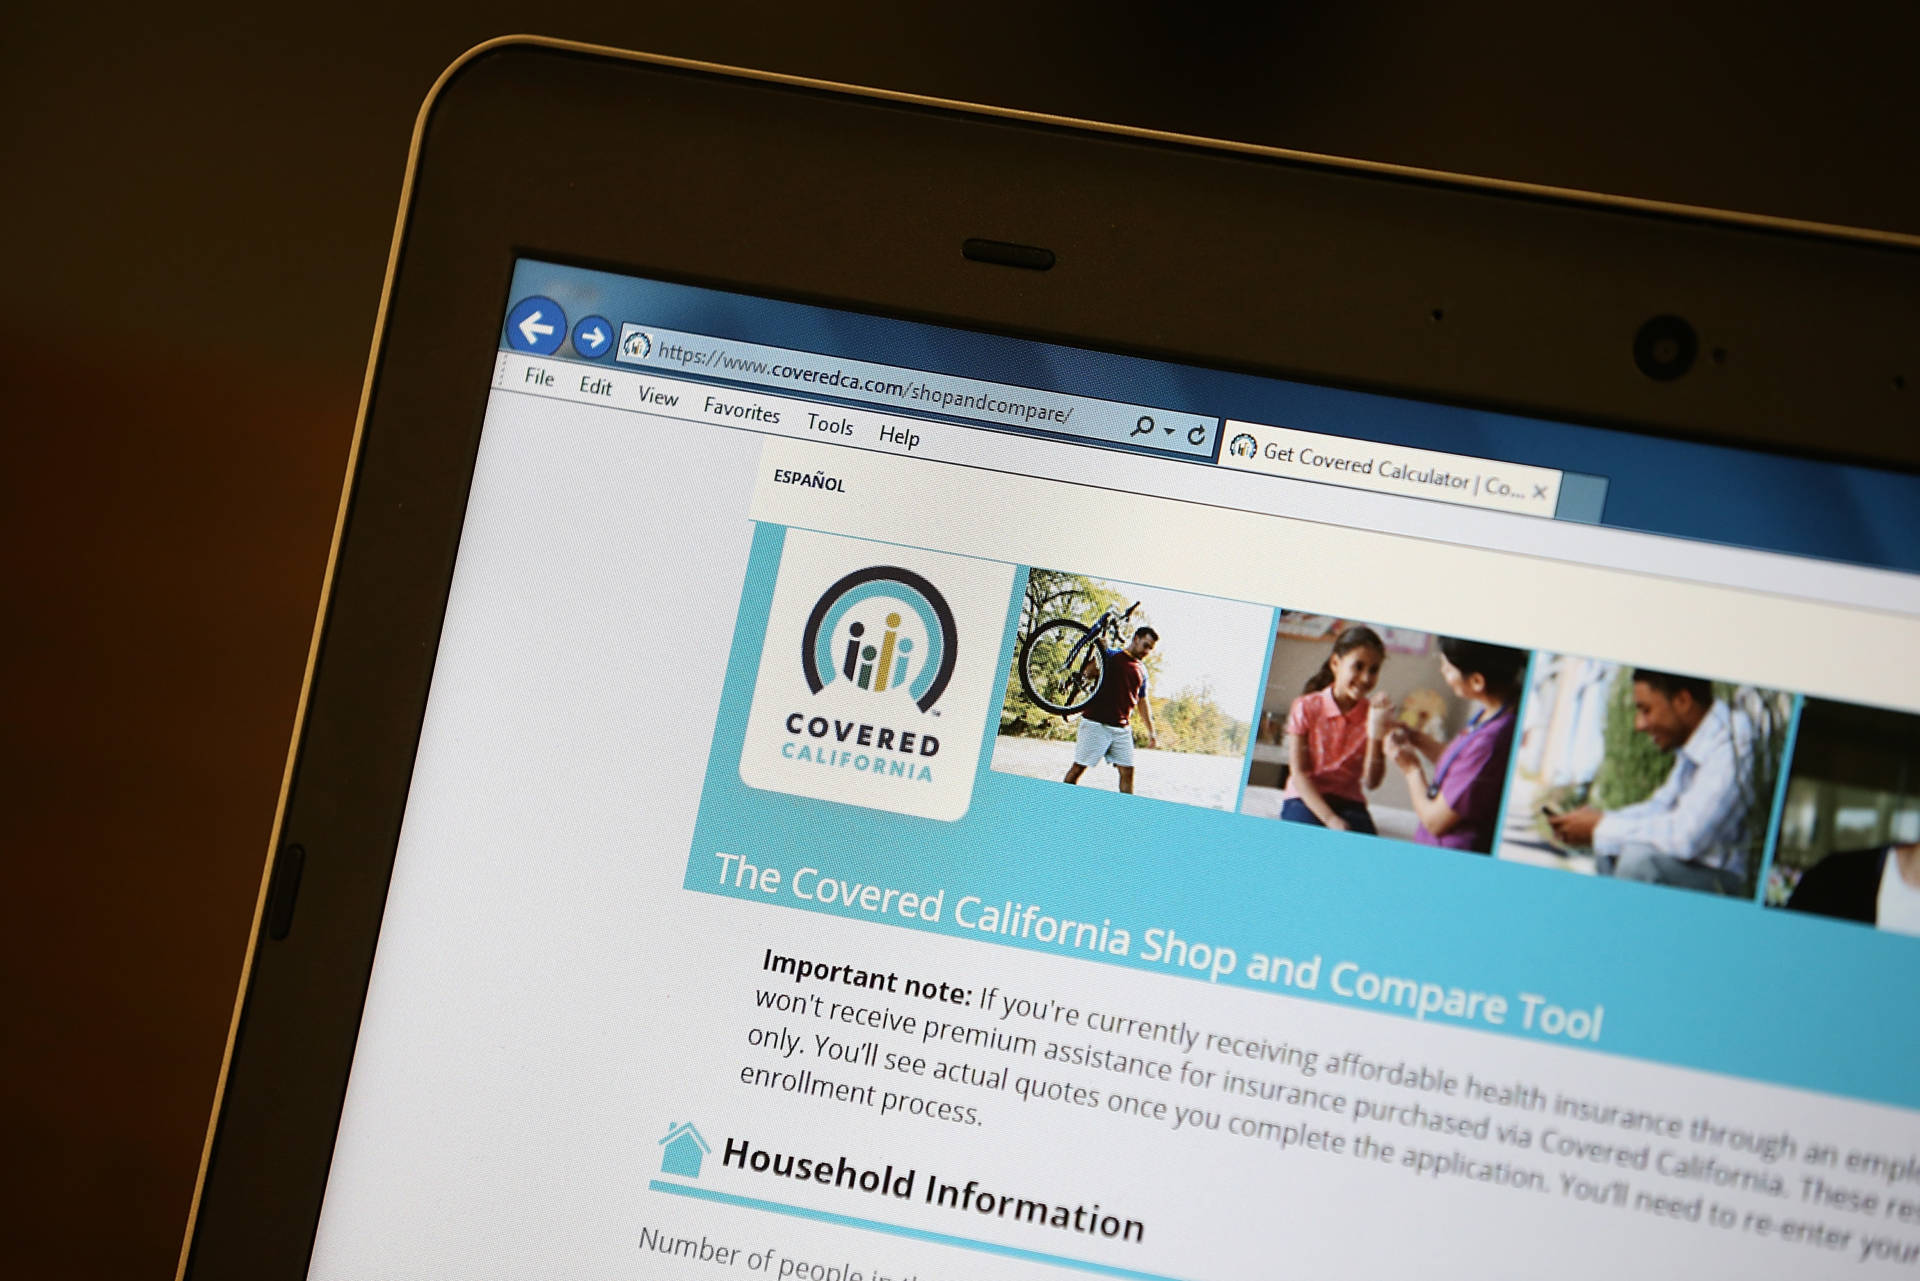 The Covered California website is displayed during a health care enrollment fair at the office of SEIU-United Healthcare Workers West on March 18, 2014 in San Francisco. Justin Sullivan/Getty Images